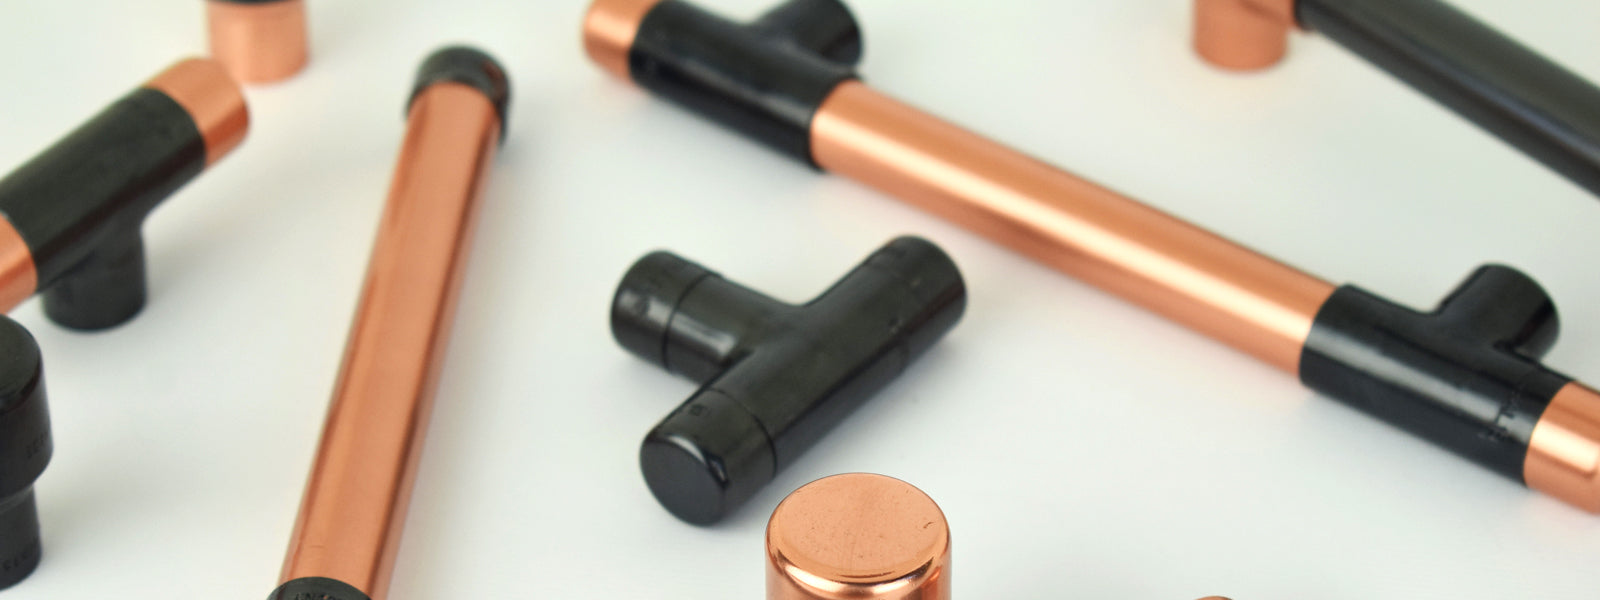 matt-black-copper-handles-hardware-proper-copper-design